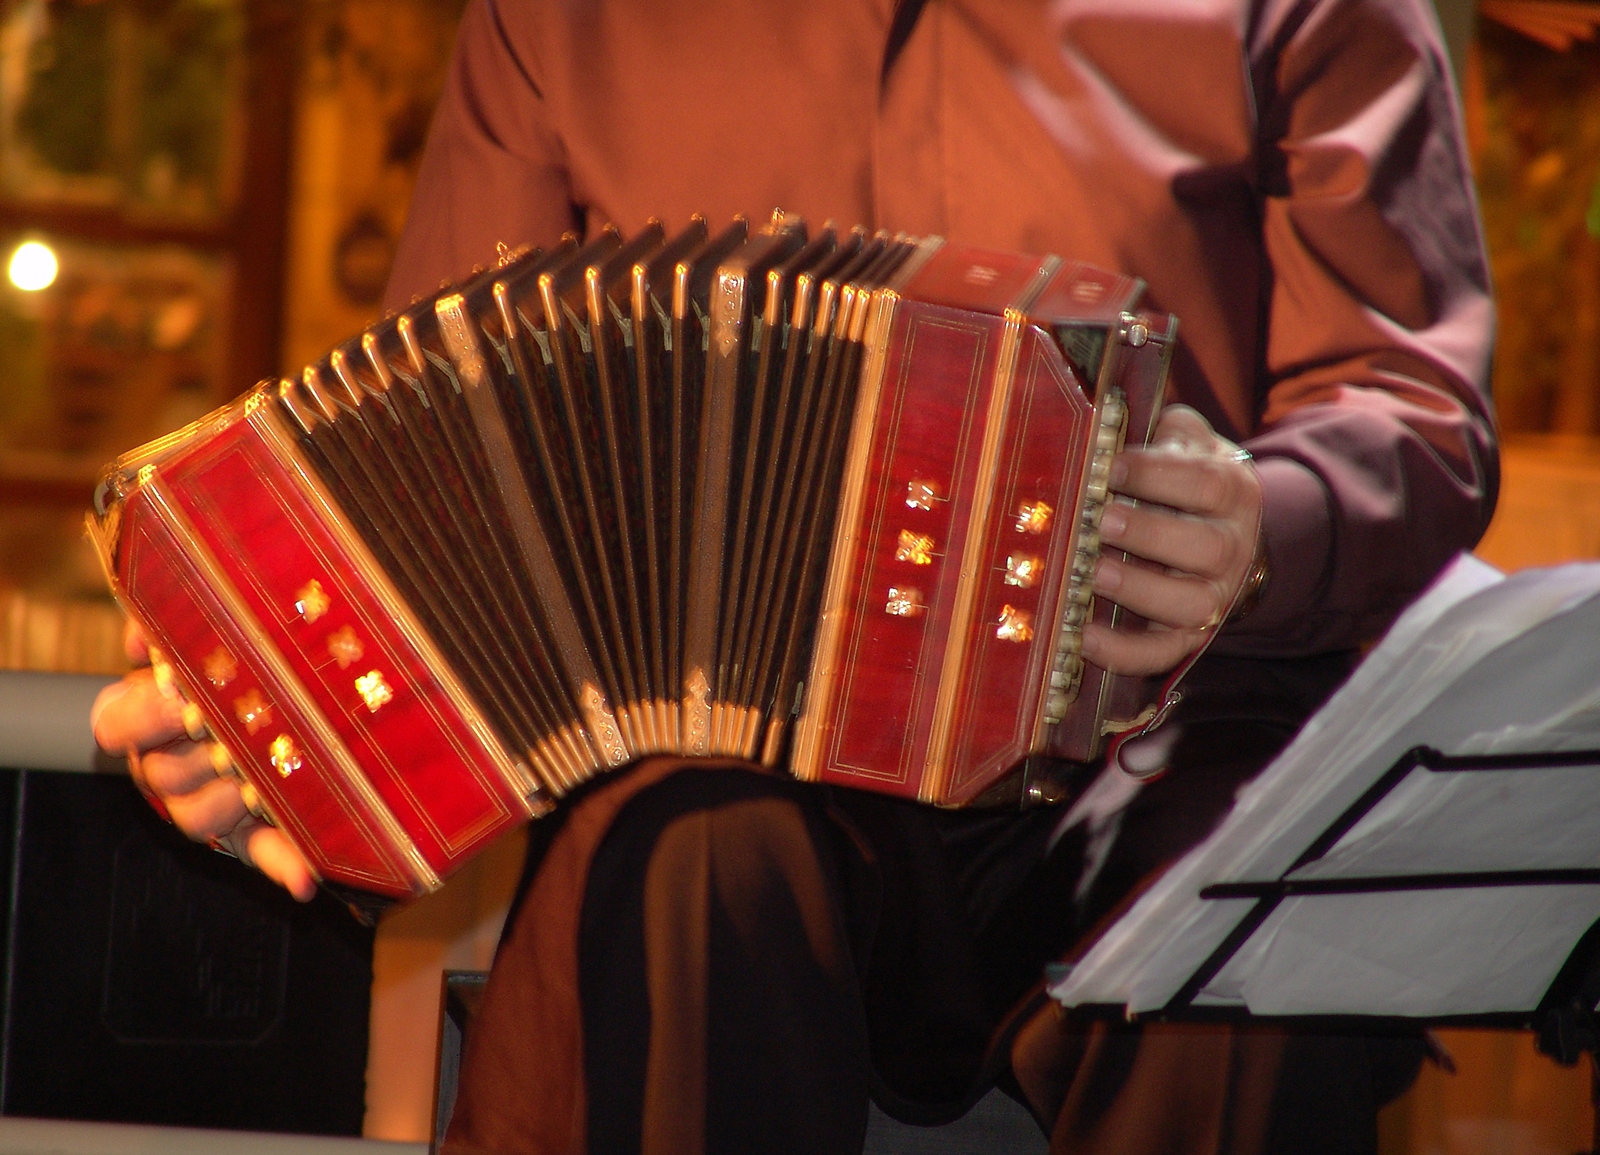 Argentine Tango - Buenos Aires typical instrument, the Bandoneon